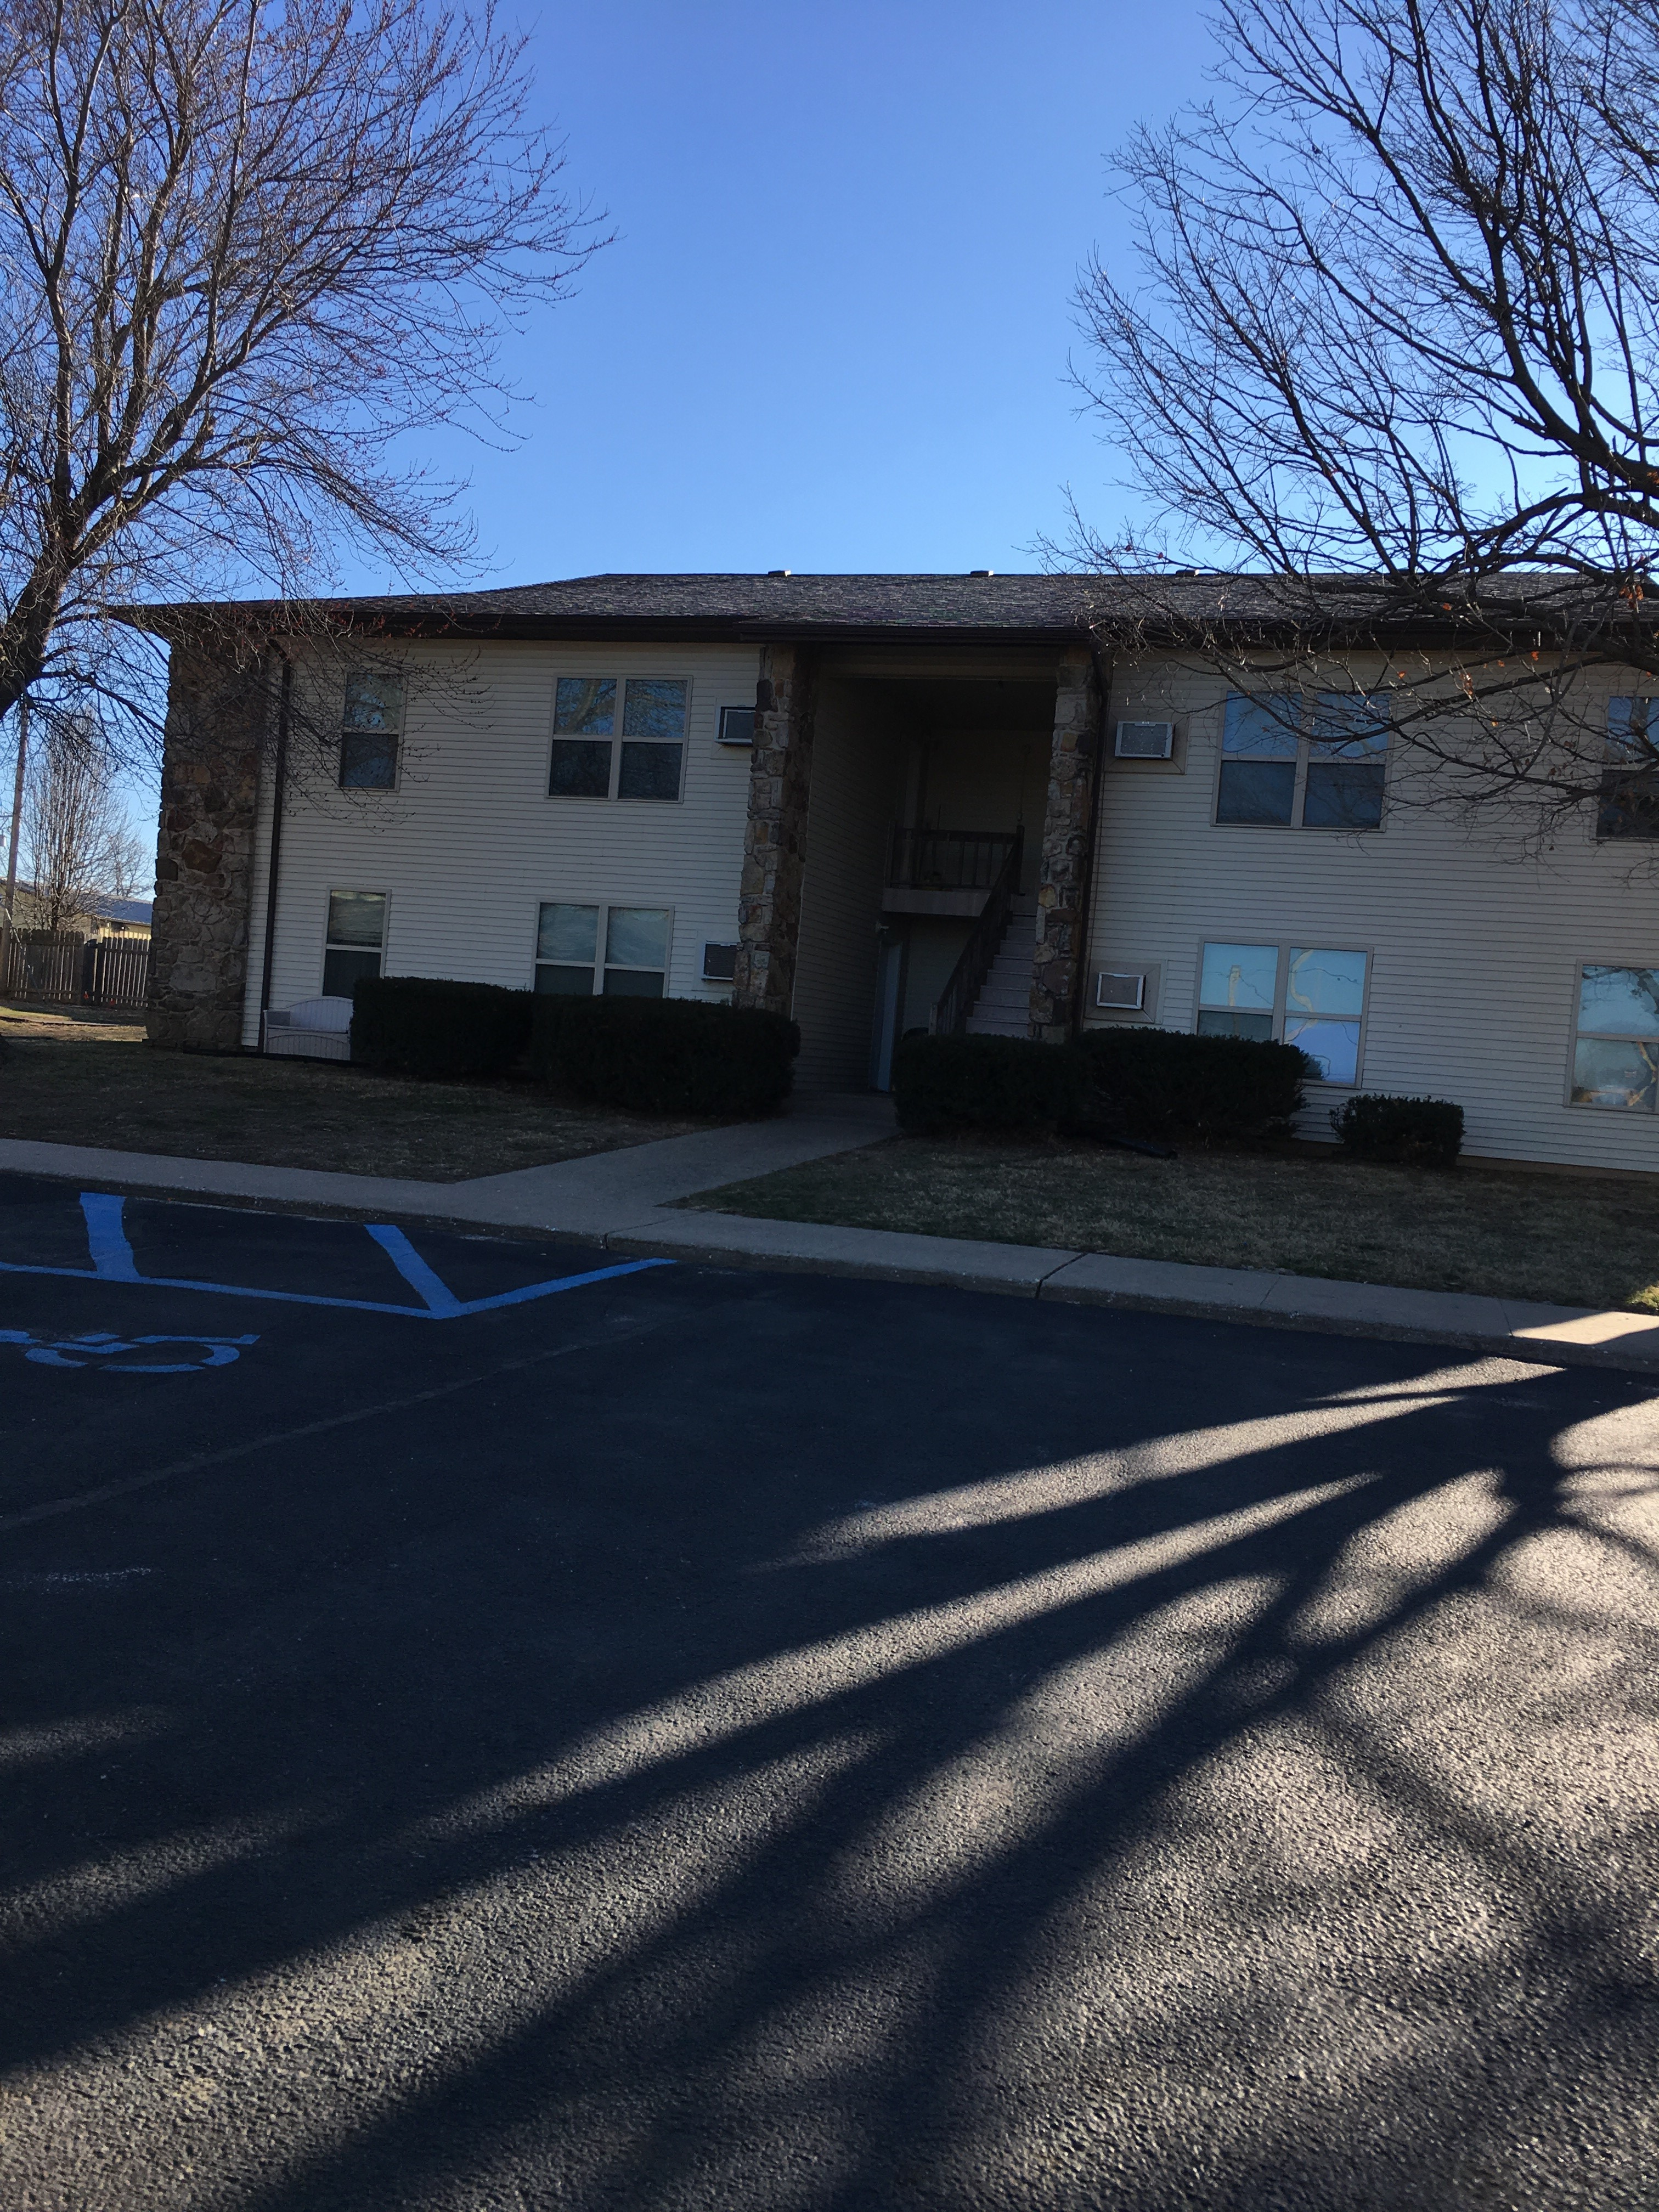 Image of Southview III Apartments in Marionville, Missouri